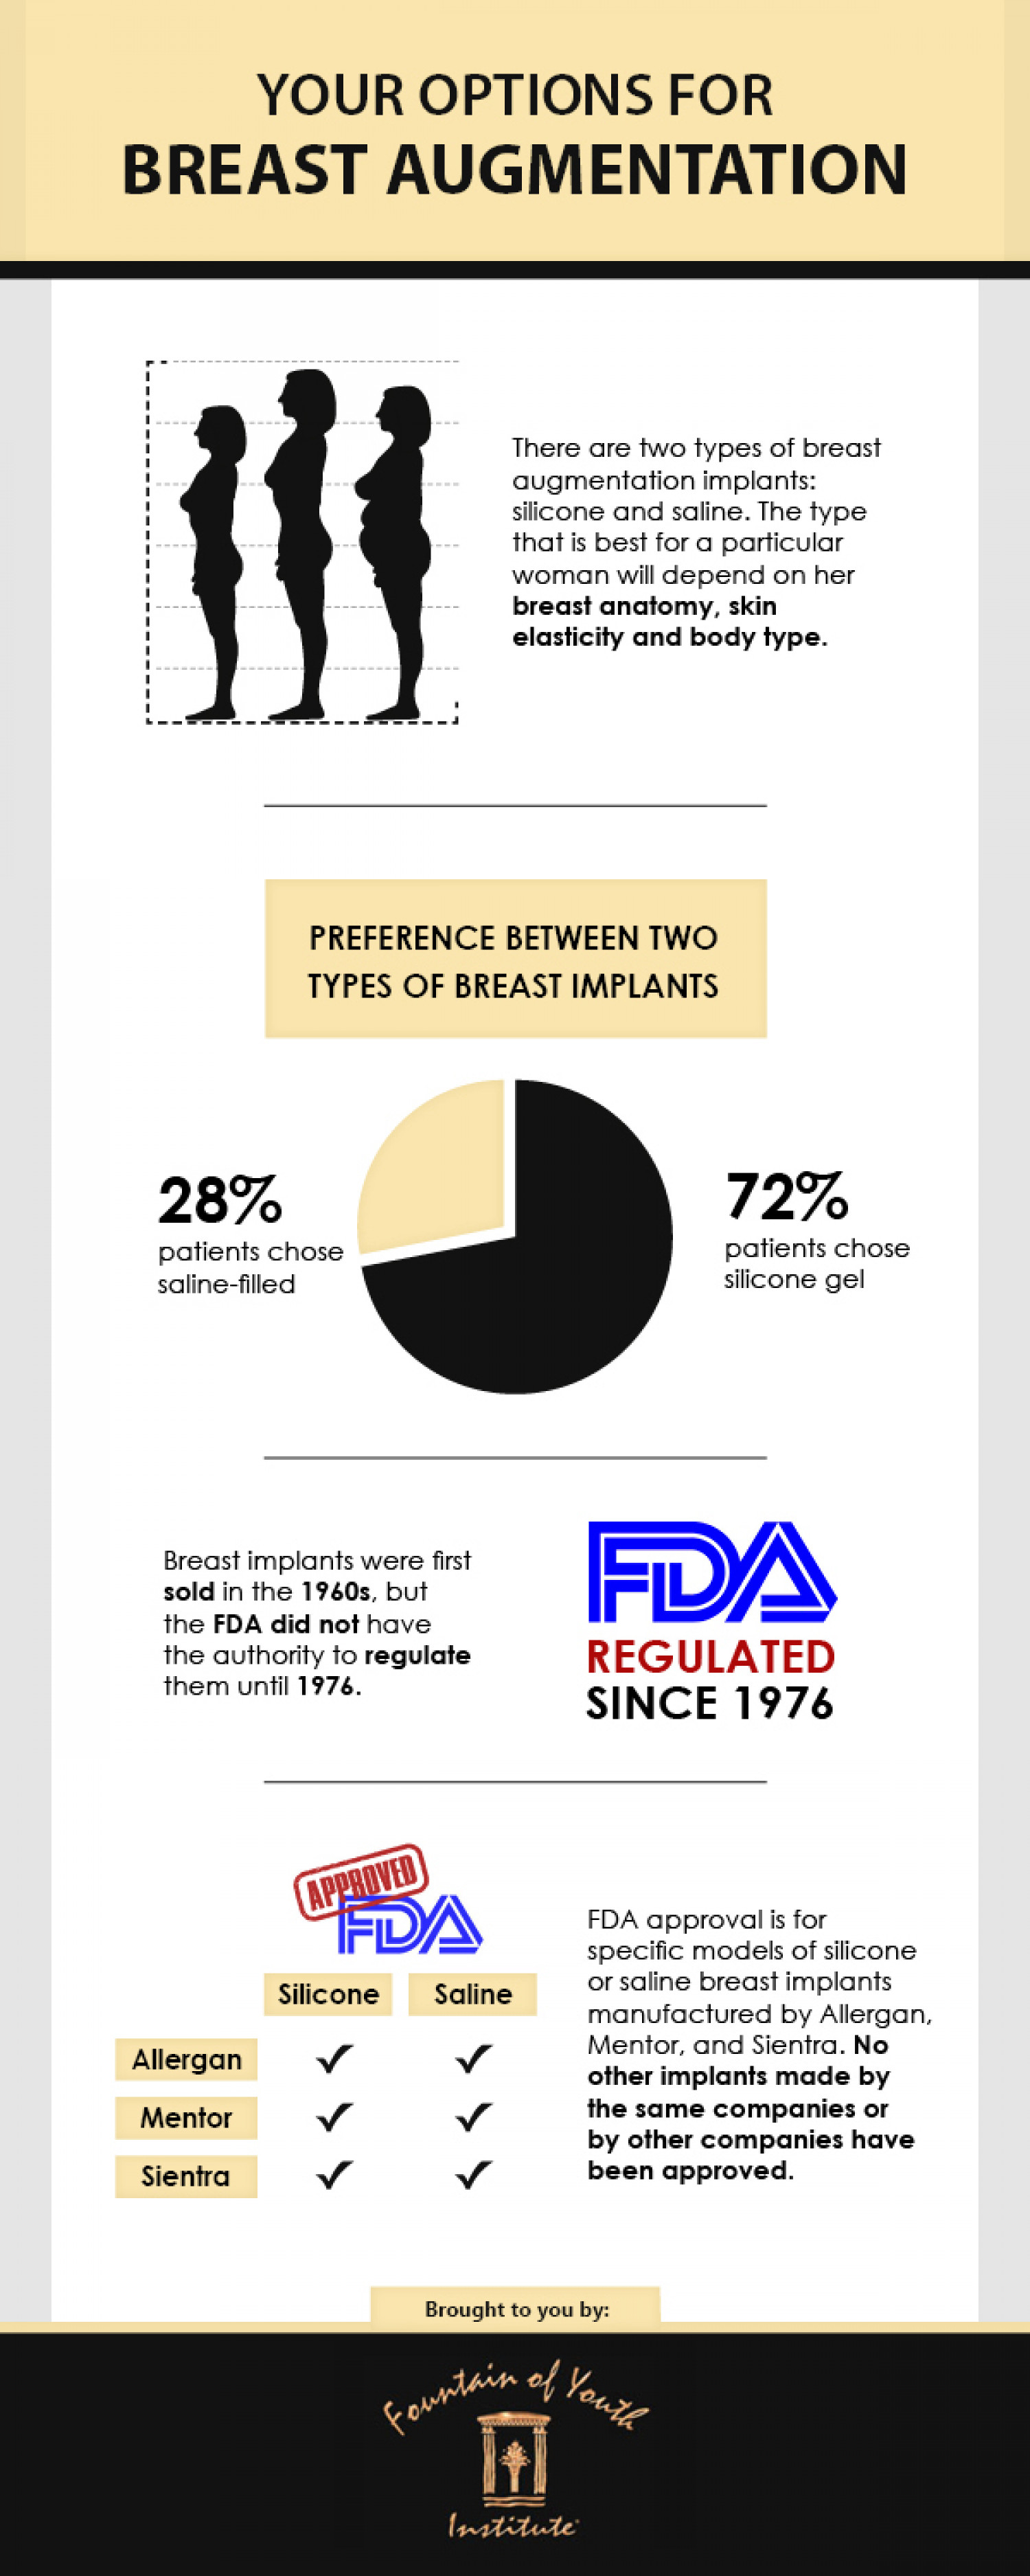 Your Options for Breast Augmentation Infographic